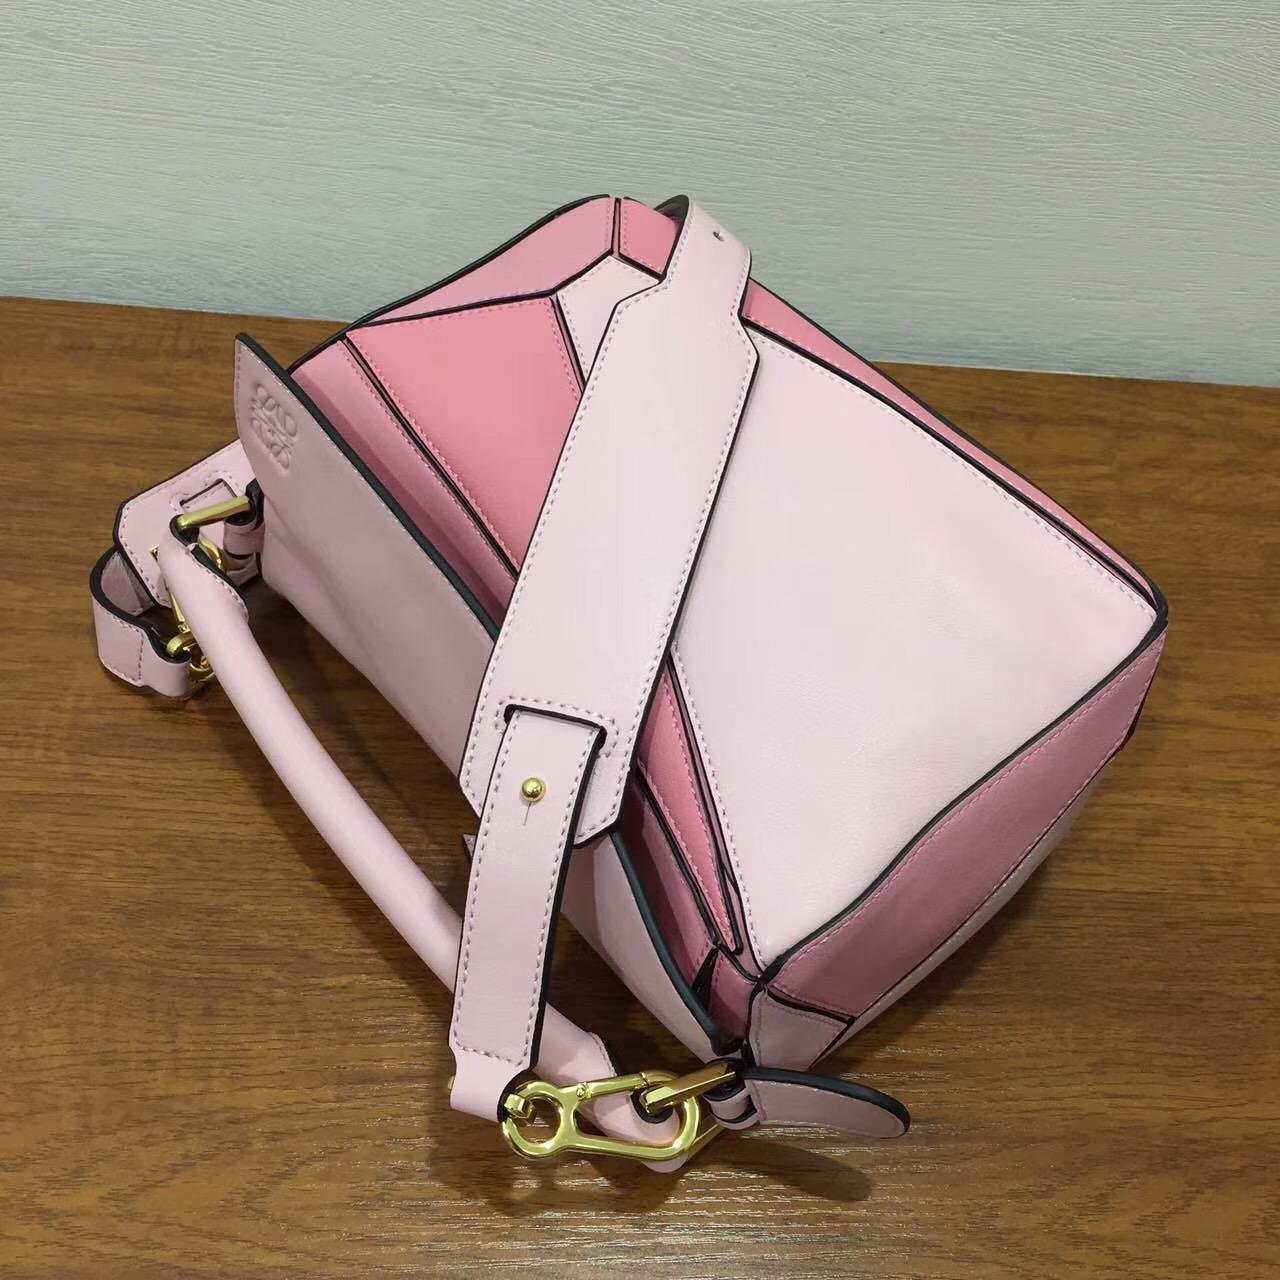 loewe羅意威 Puzzle Small Bag soft pink/candy/dark pink